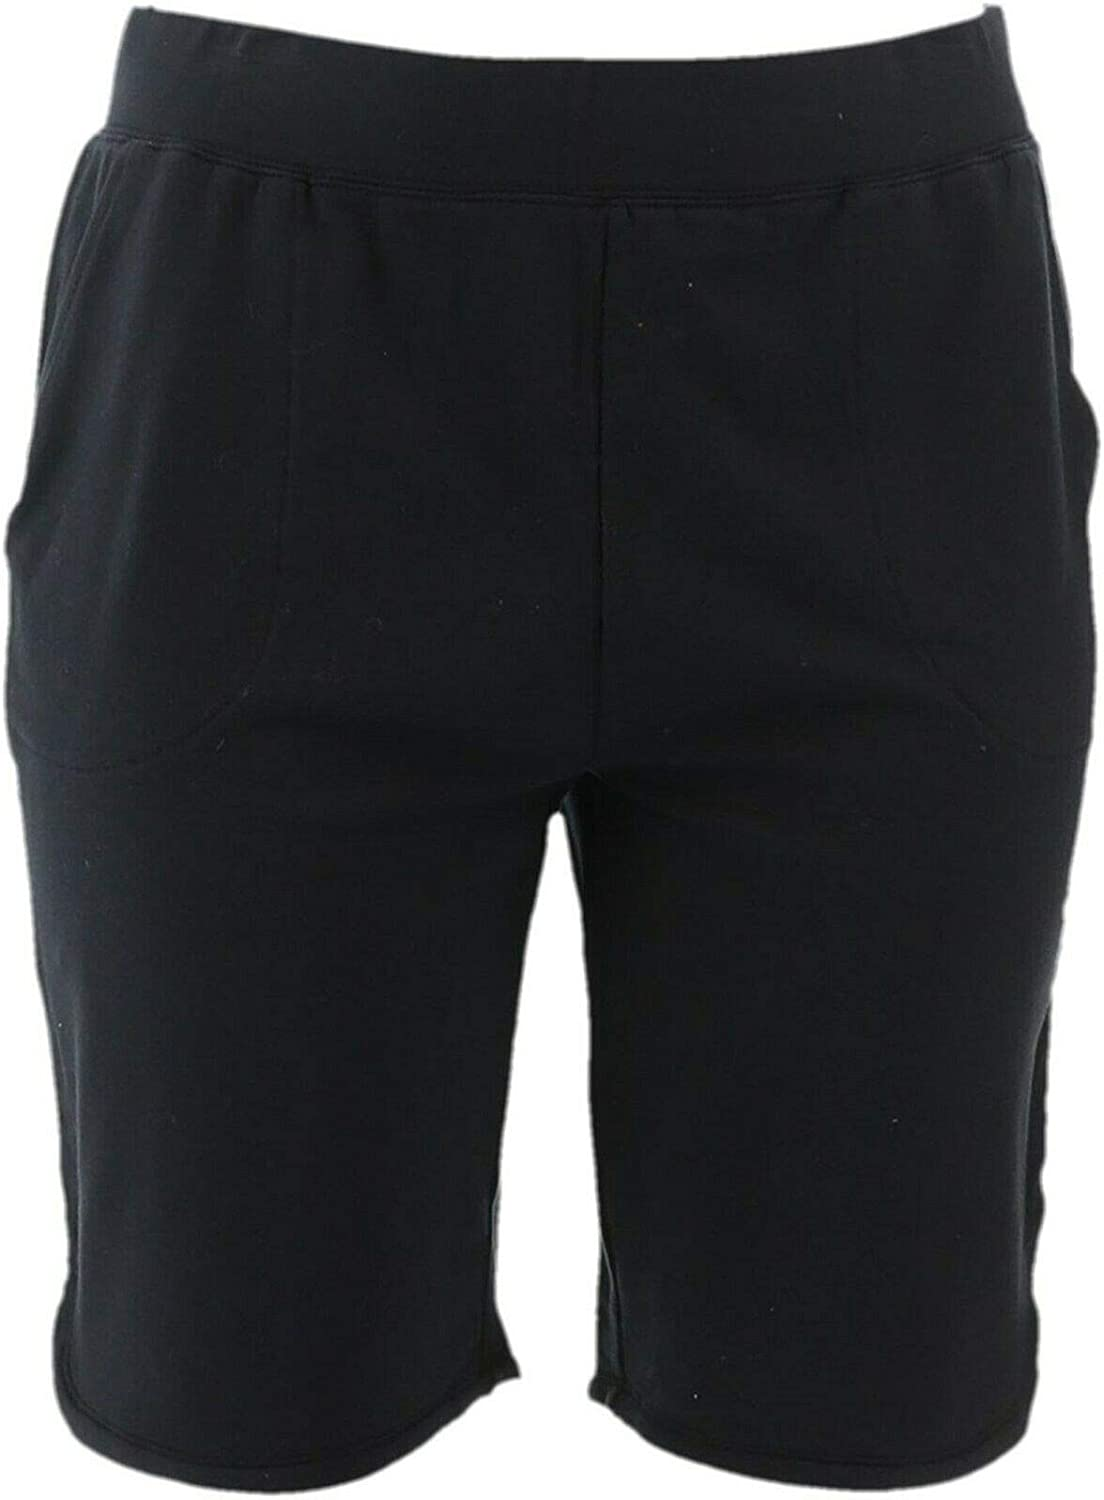 Denim& Co French Terry Pull-On Shorts 11 Inseam A351340